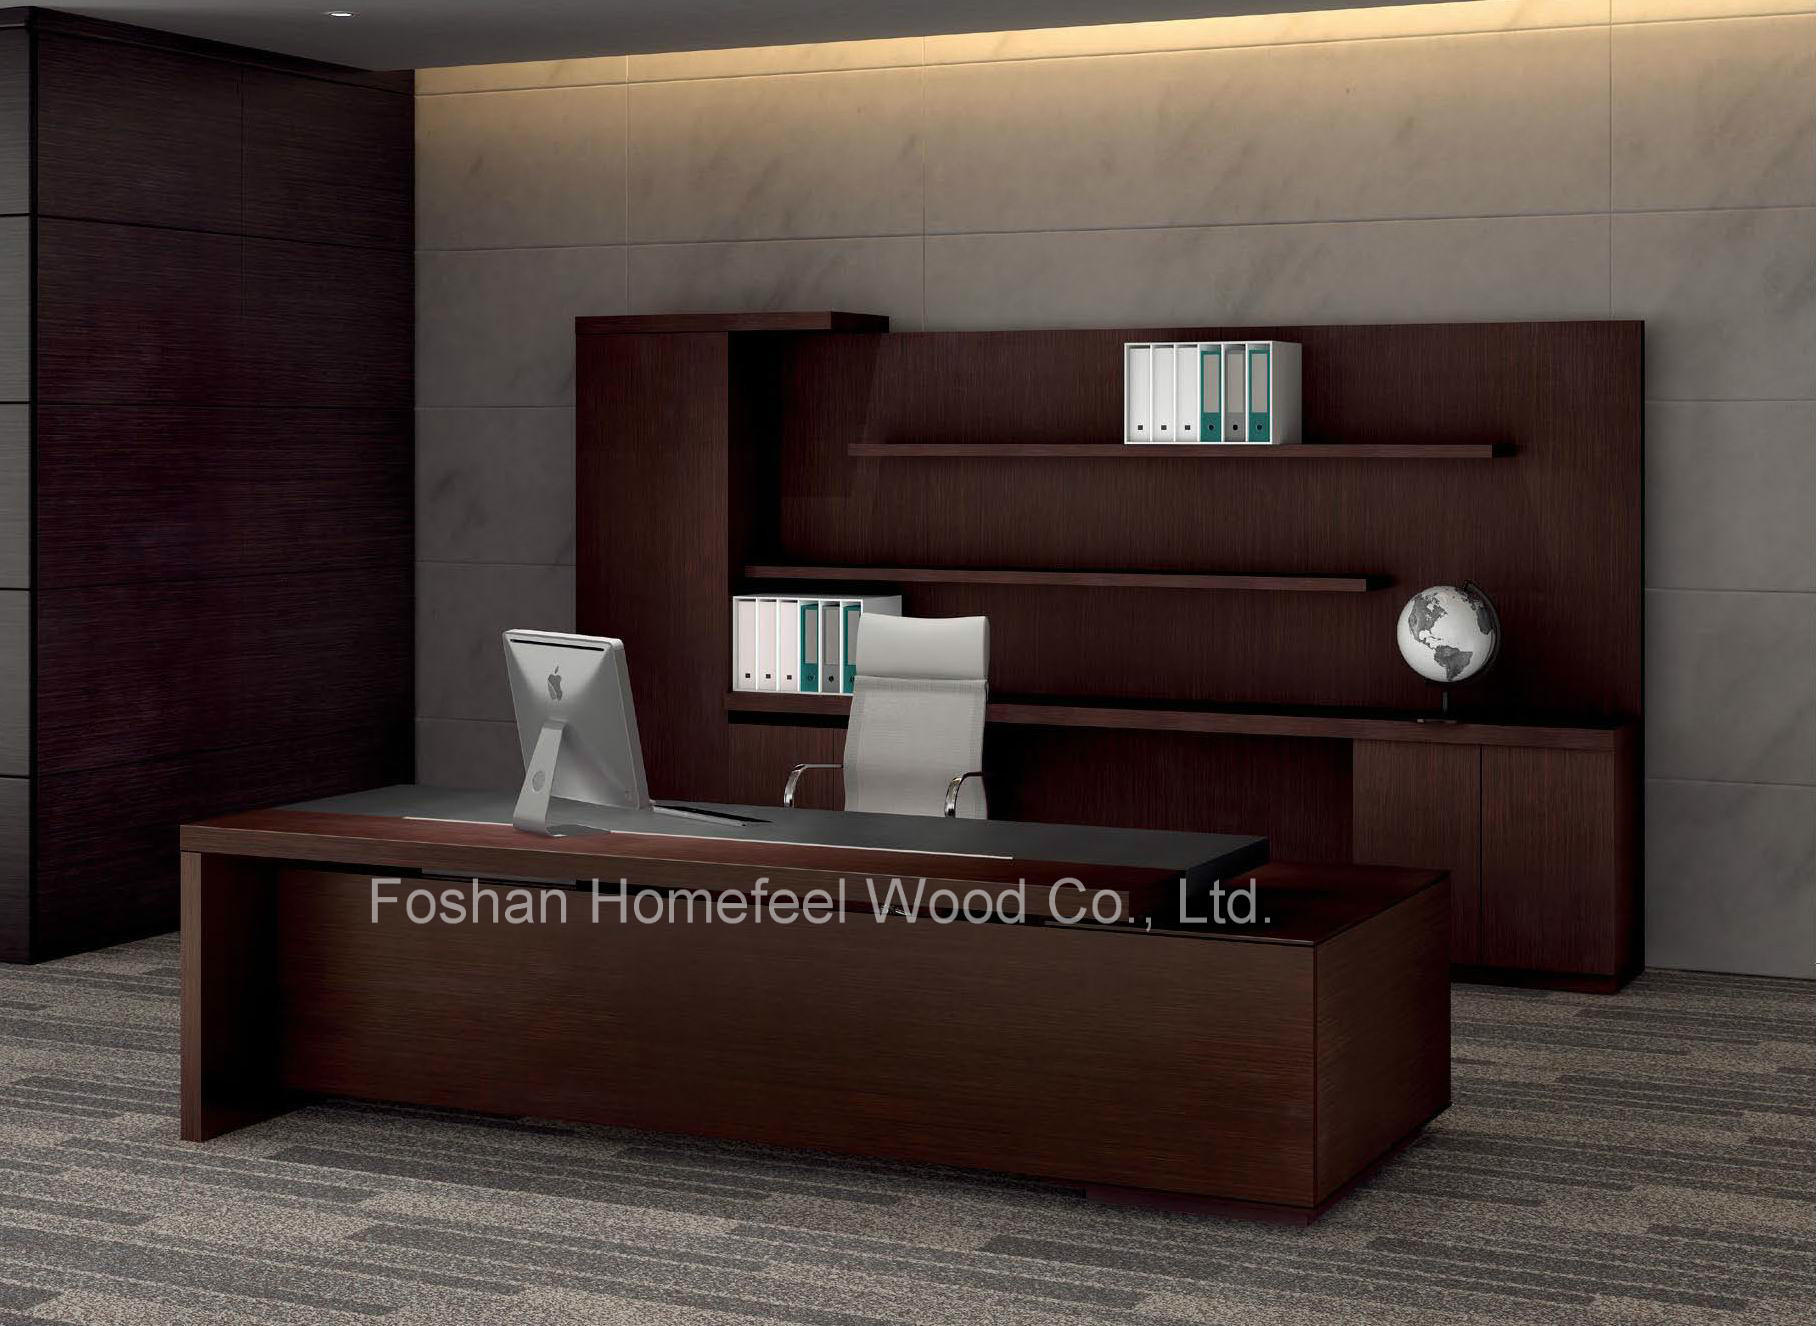 Foshan Homefeel Wood Co., Ltd.